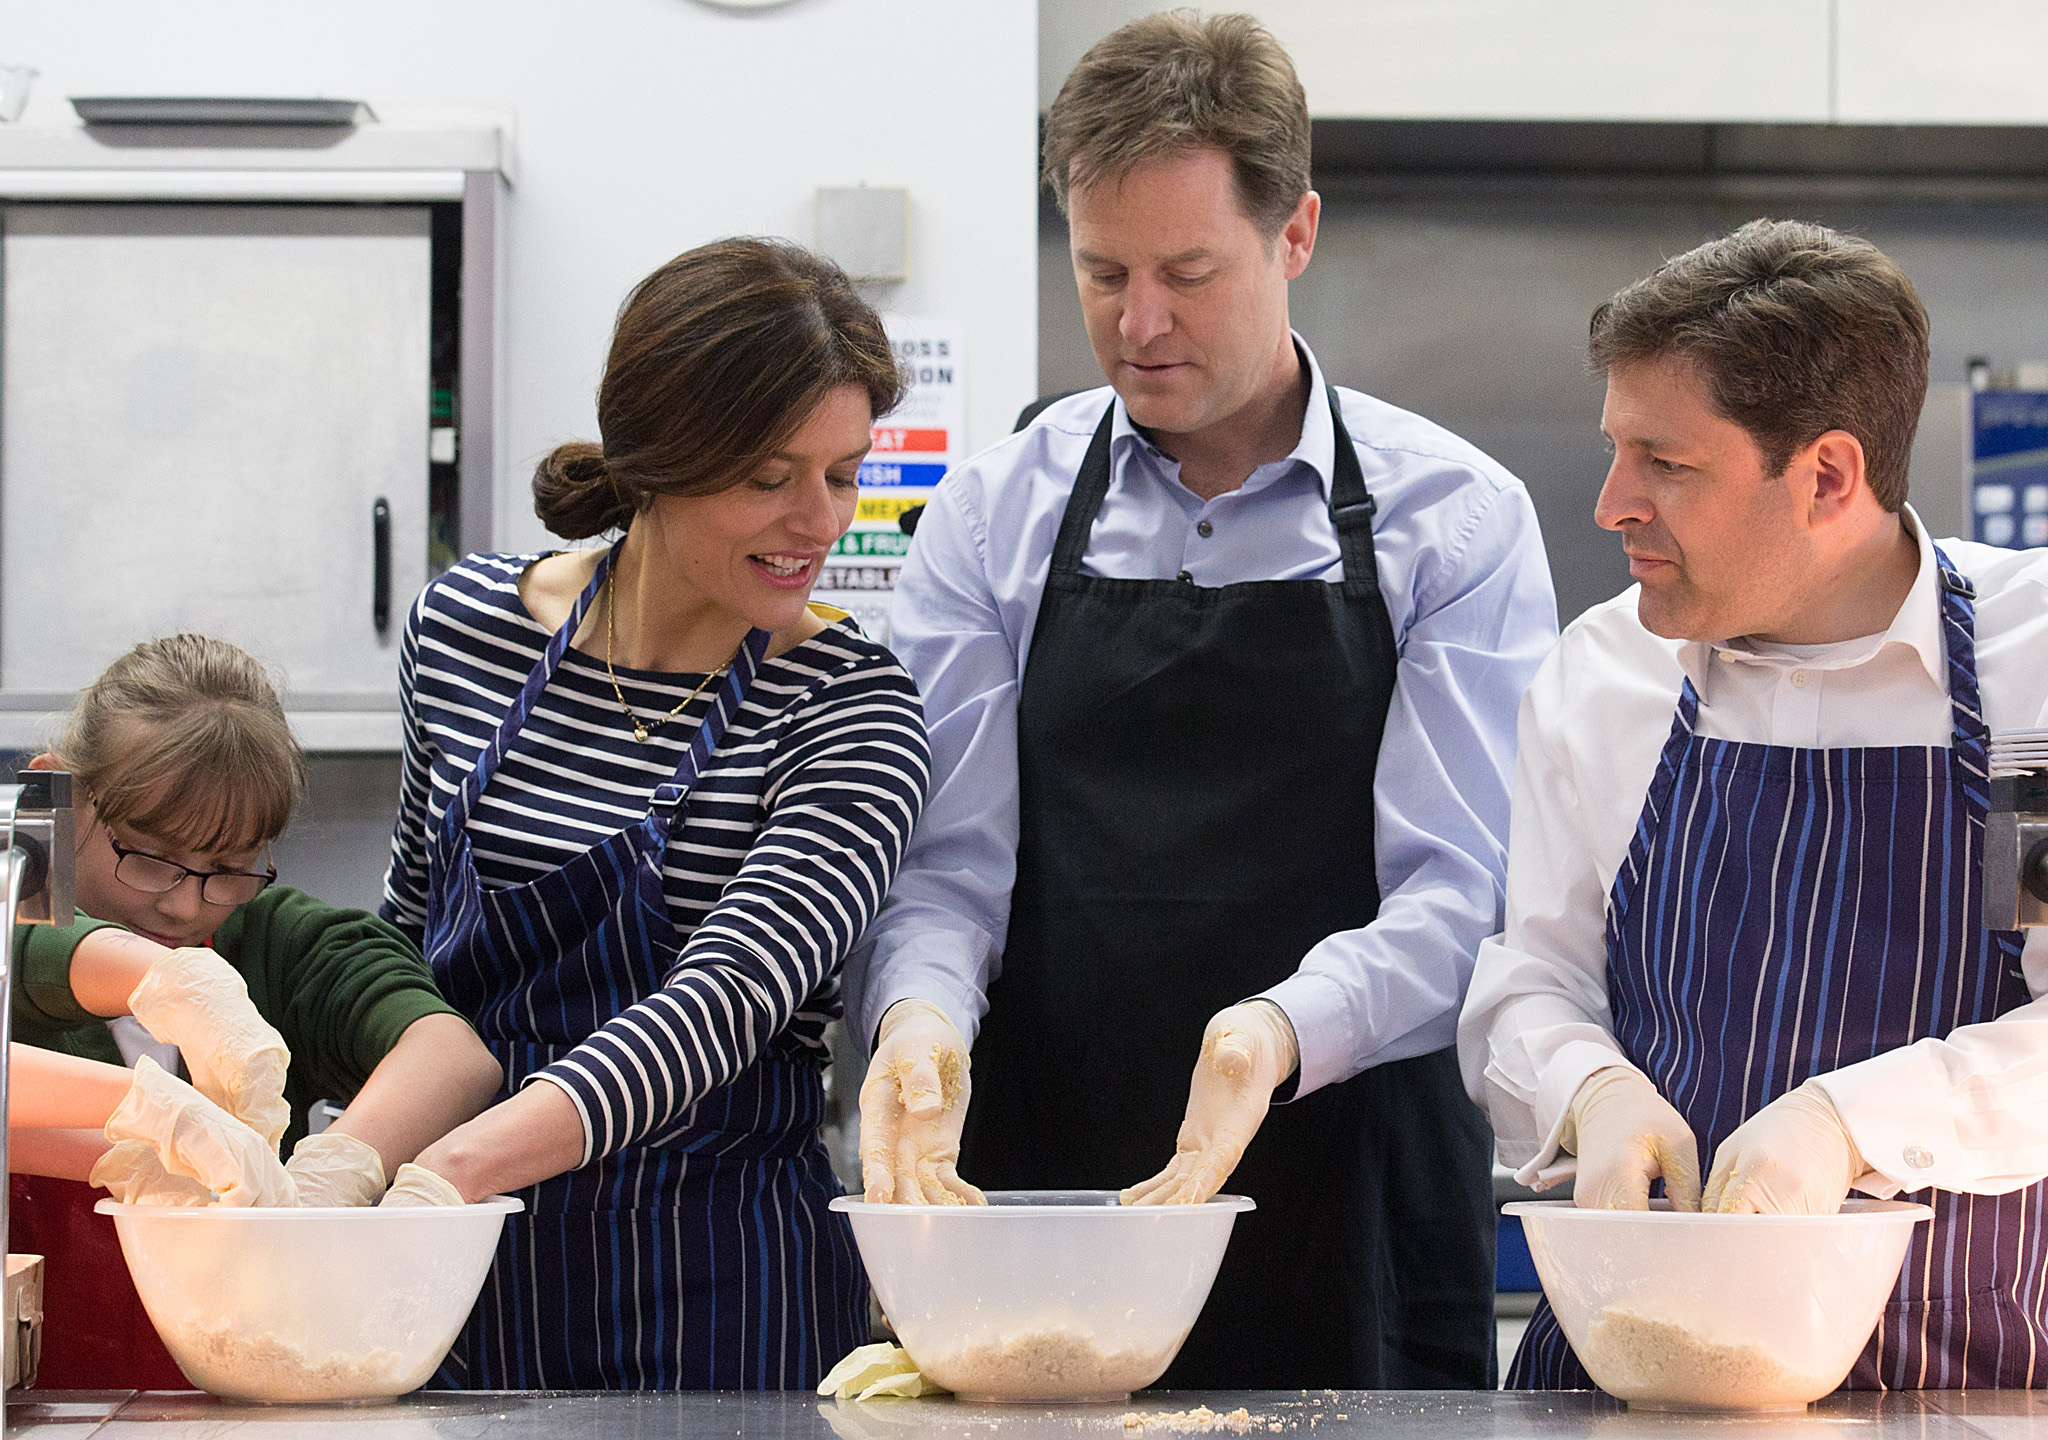 Nick Clegg Visits A West Country School With His Wife...CHIPPENHAM, ENGLAND - APRIL 29:  Deputy Prime Minister Nick Clegg (C) and his wife Miriam Gonzalez Durantez help make a crumble at Ivy Lane Primary School as he canvasses with local Liberal Democrat candidate for Chippenham Duncan Hames (R) on April 29, 2015 in Chippenham, England. As the campaign enters the final days, the country's political parties are stepping up the campaign to appeal for votes from the indecided electorate.  (Photo by Matt Cardy/Getty Images)